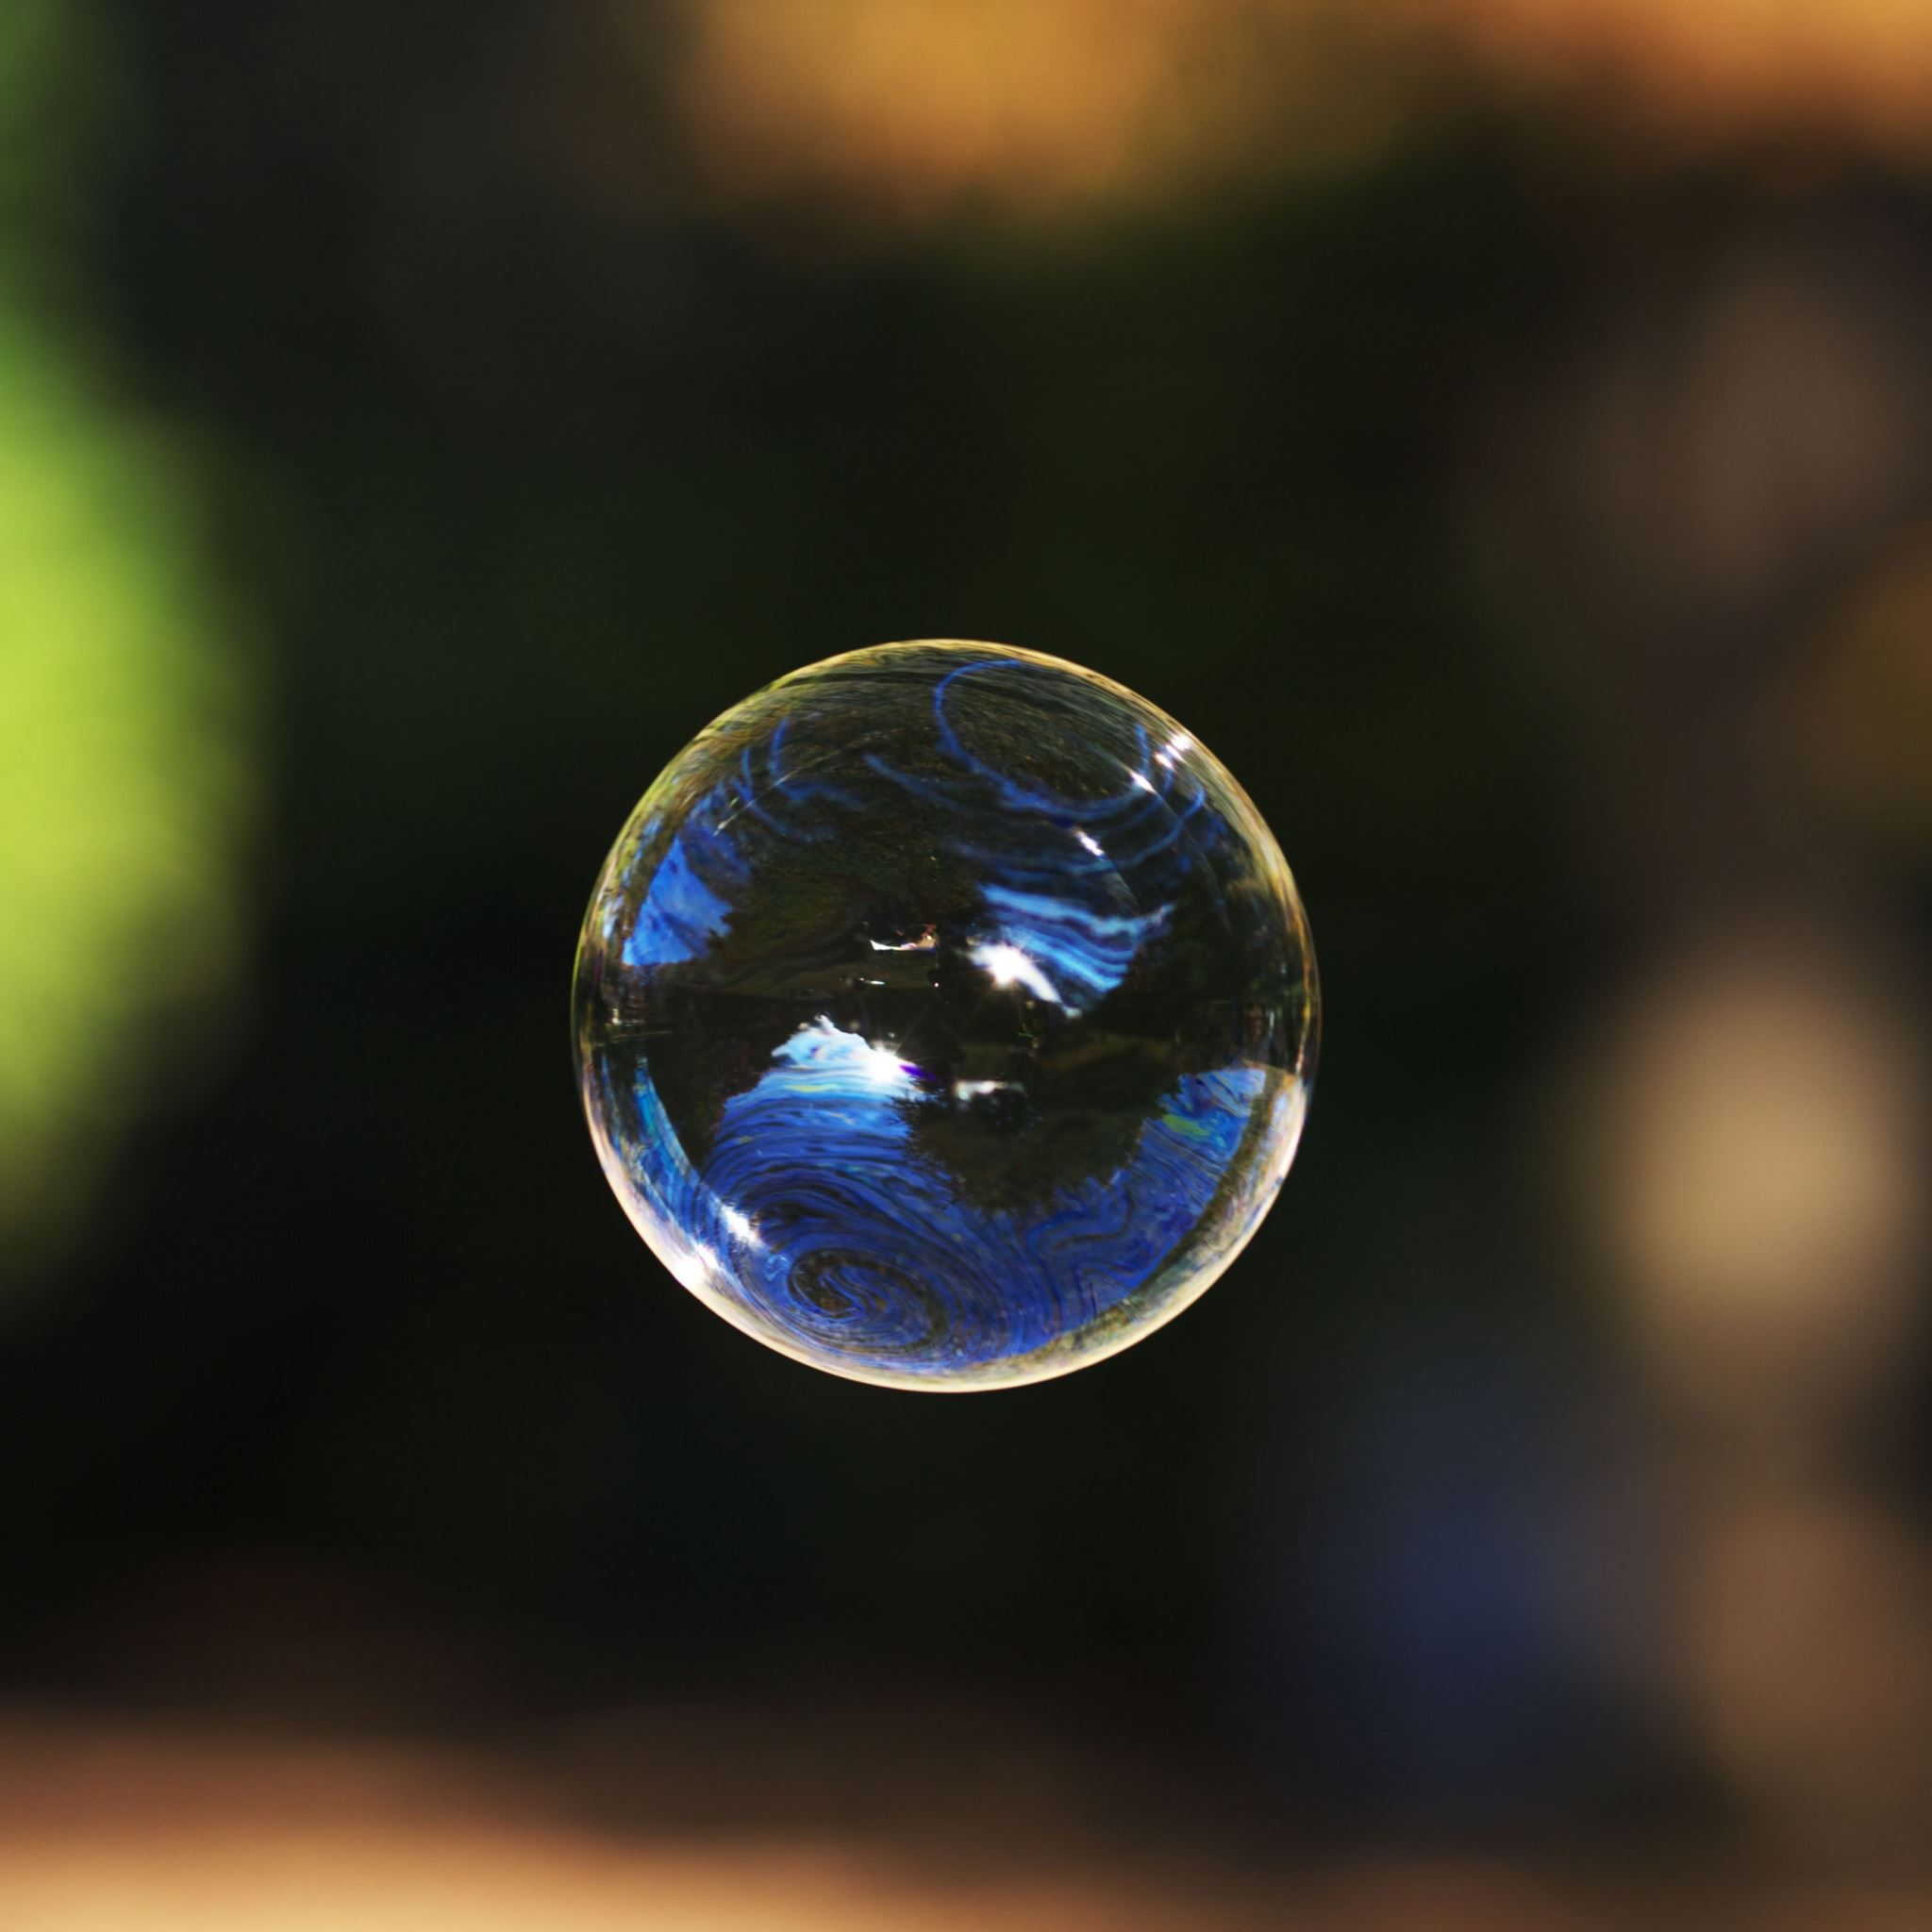 Soap Bubble iPad Air wallpaper